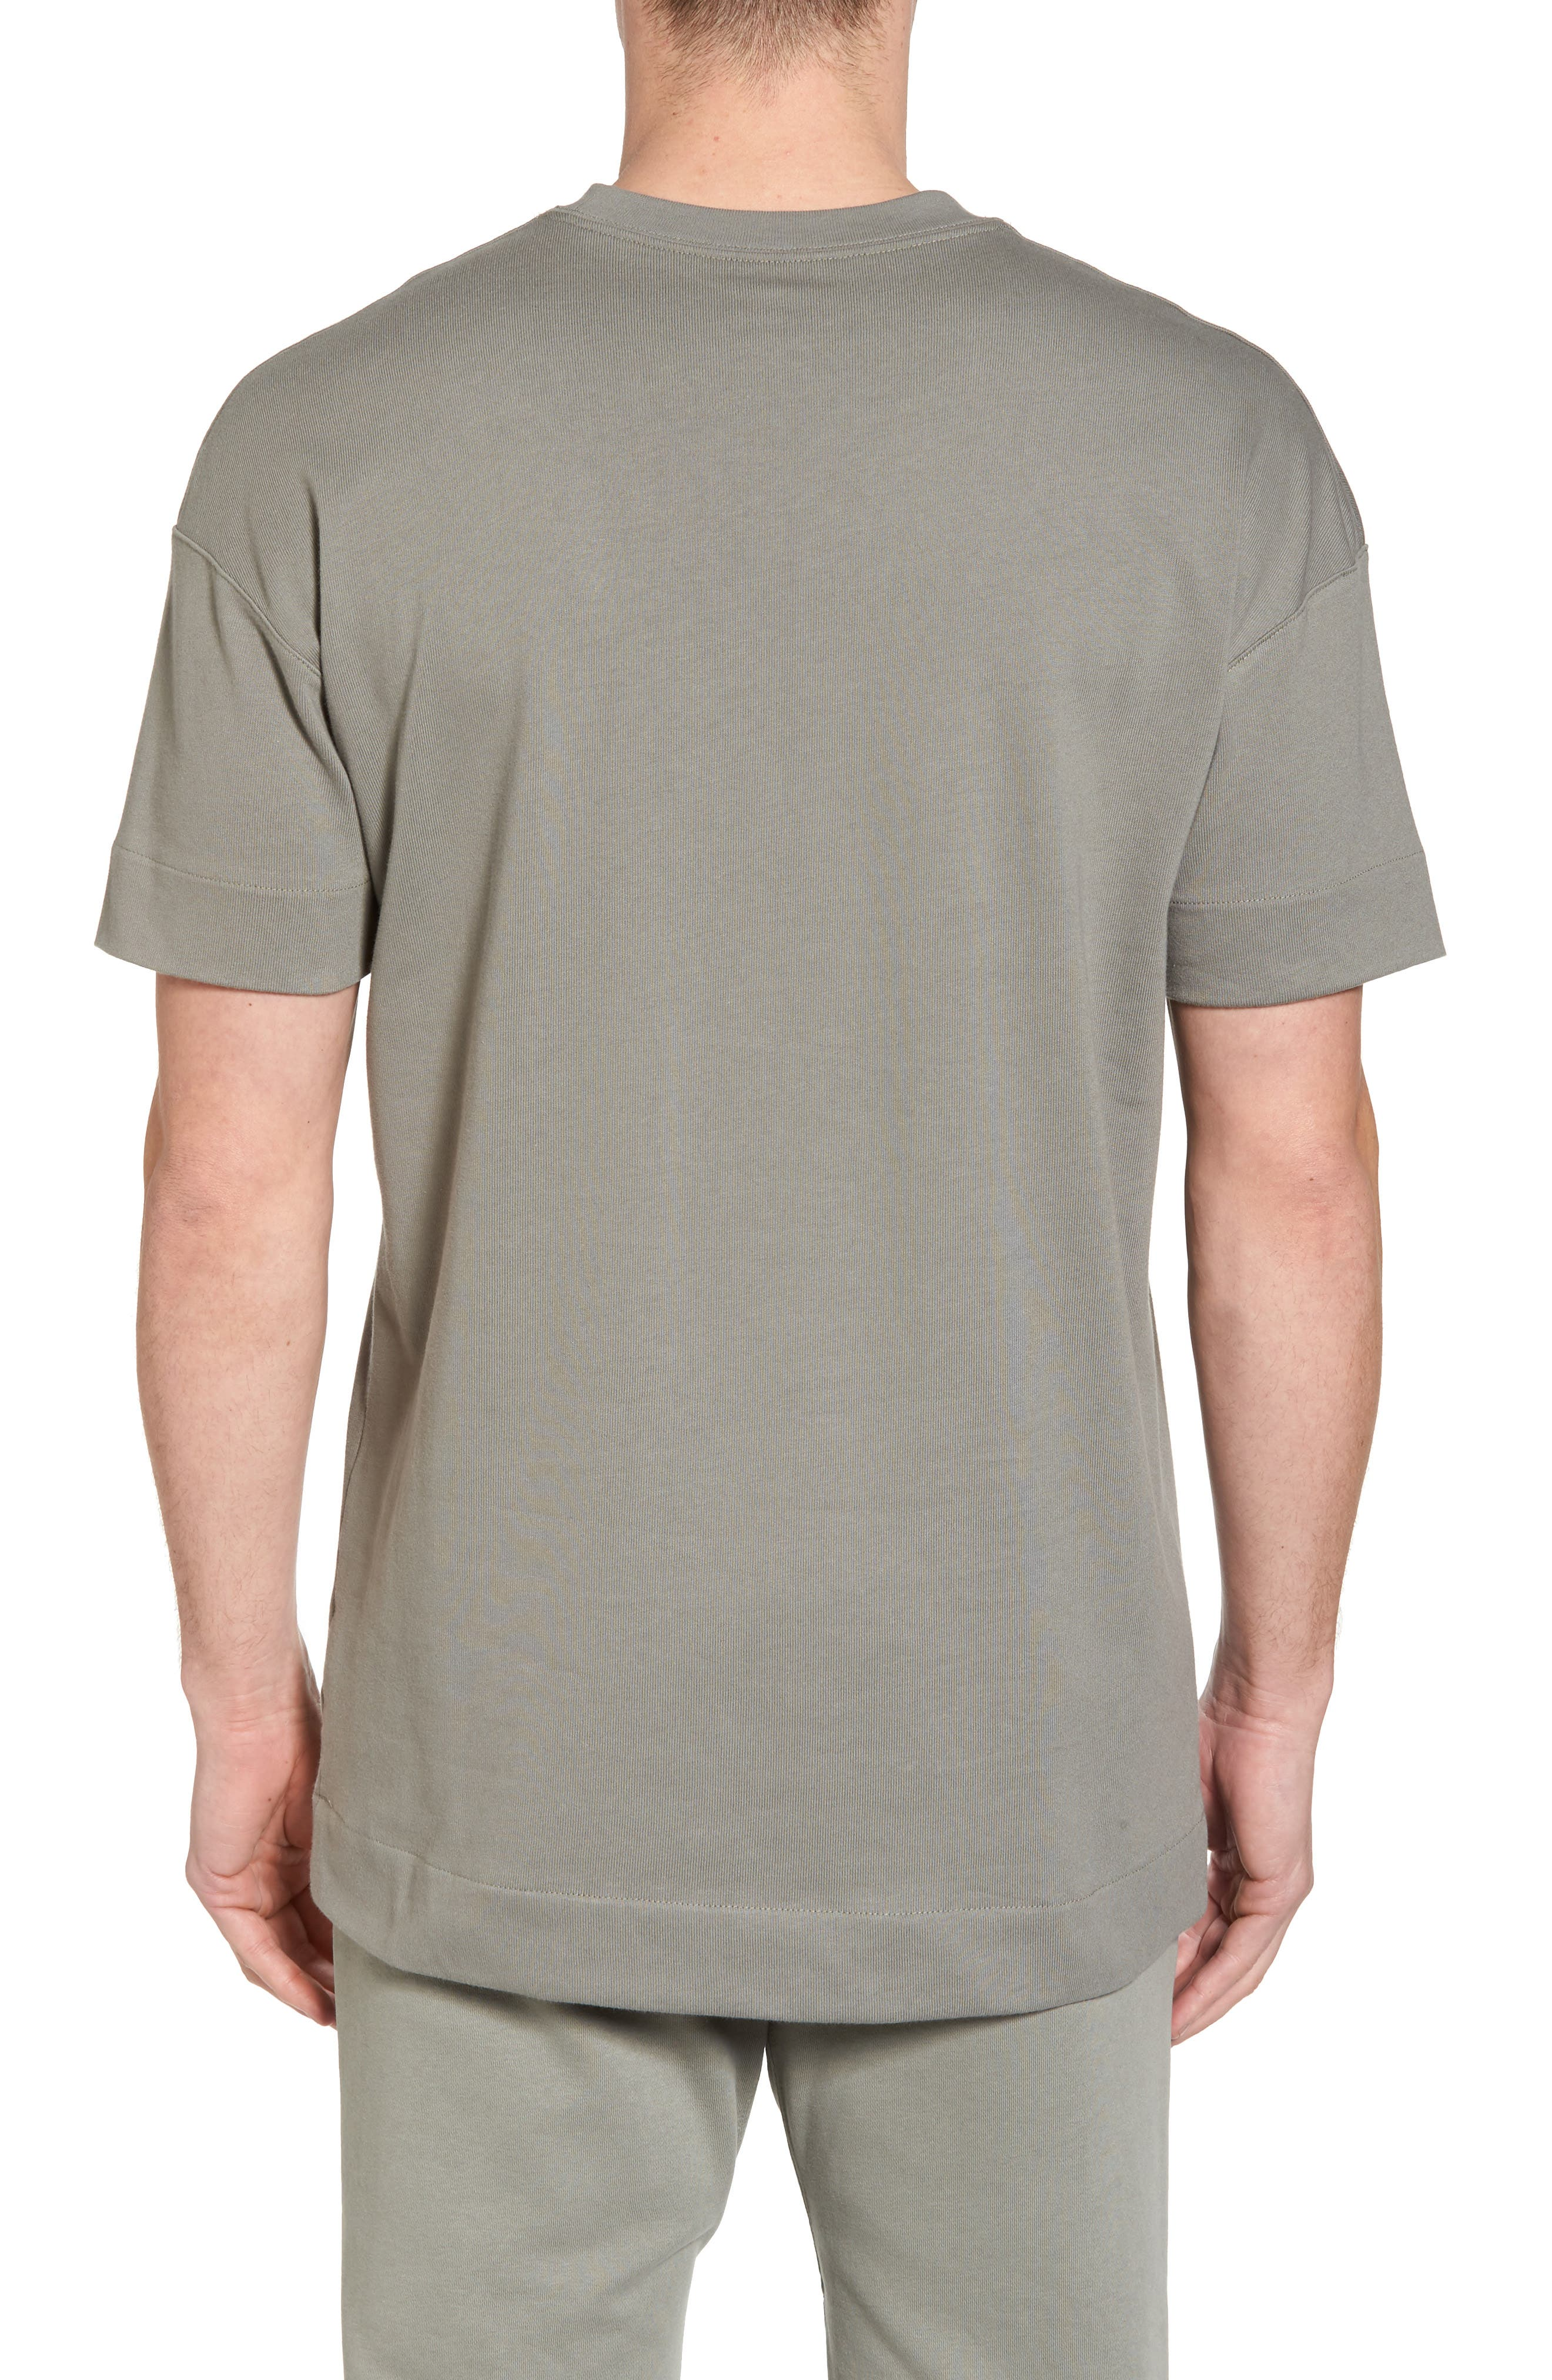 NSW Heavyweight AF-1 T-Shirt,                             Alternate thumbnail 2, color,                             Neutral Olive/ Medium Olive